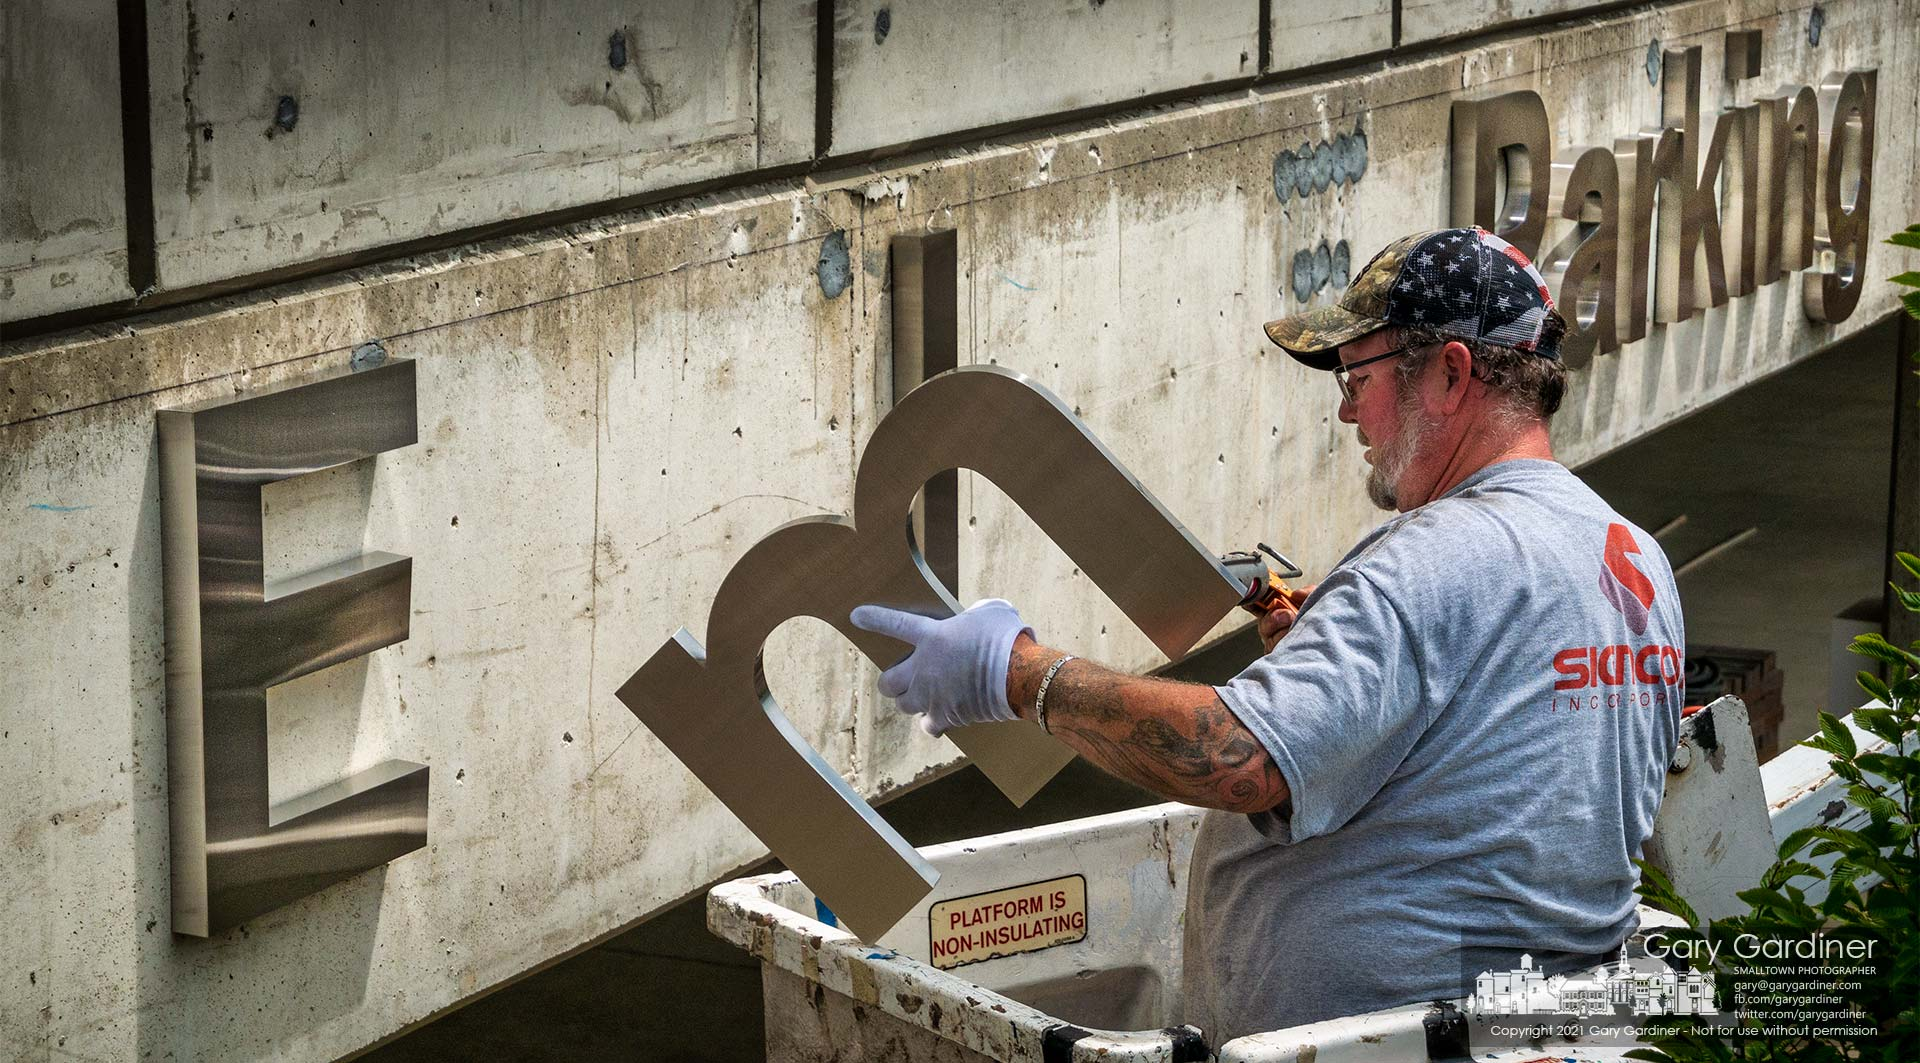 """A signmaker applies adhesive to the letter """"m"""" before attaching it next to the capital """"E"""" to create signage for the employee parking entrance at the COPC building on Africa Road. My Final Photo for July 16, 2021."""